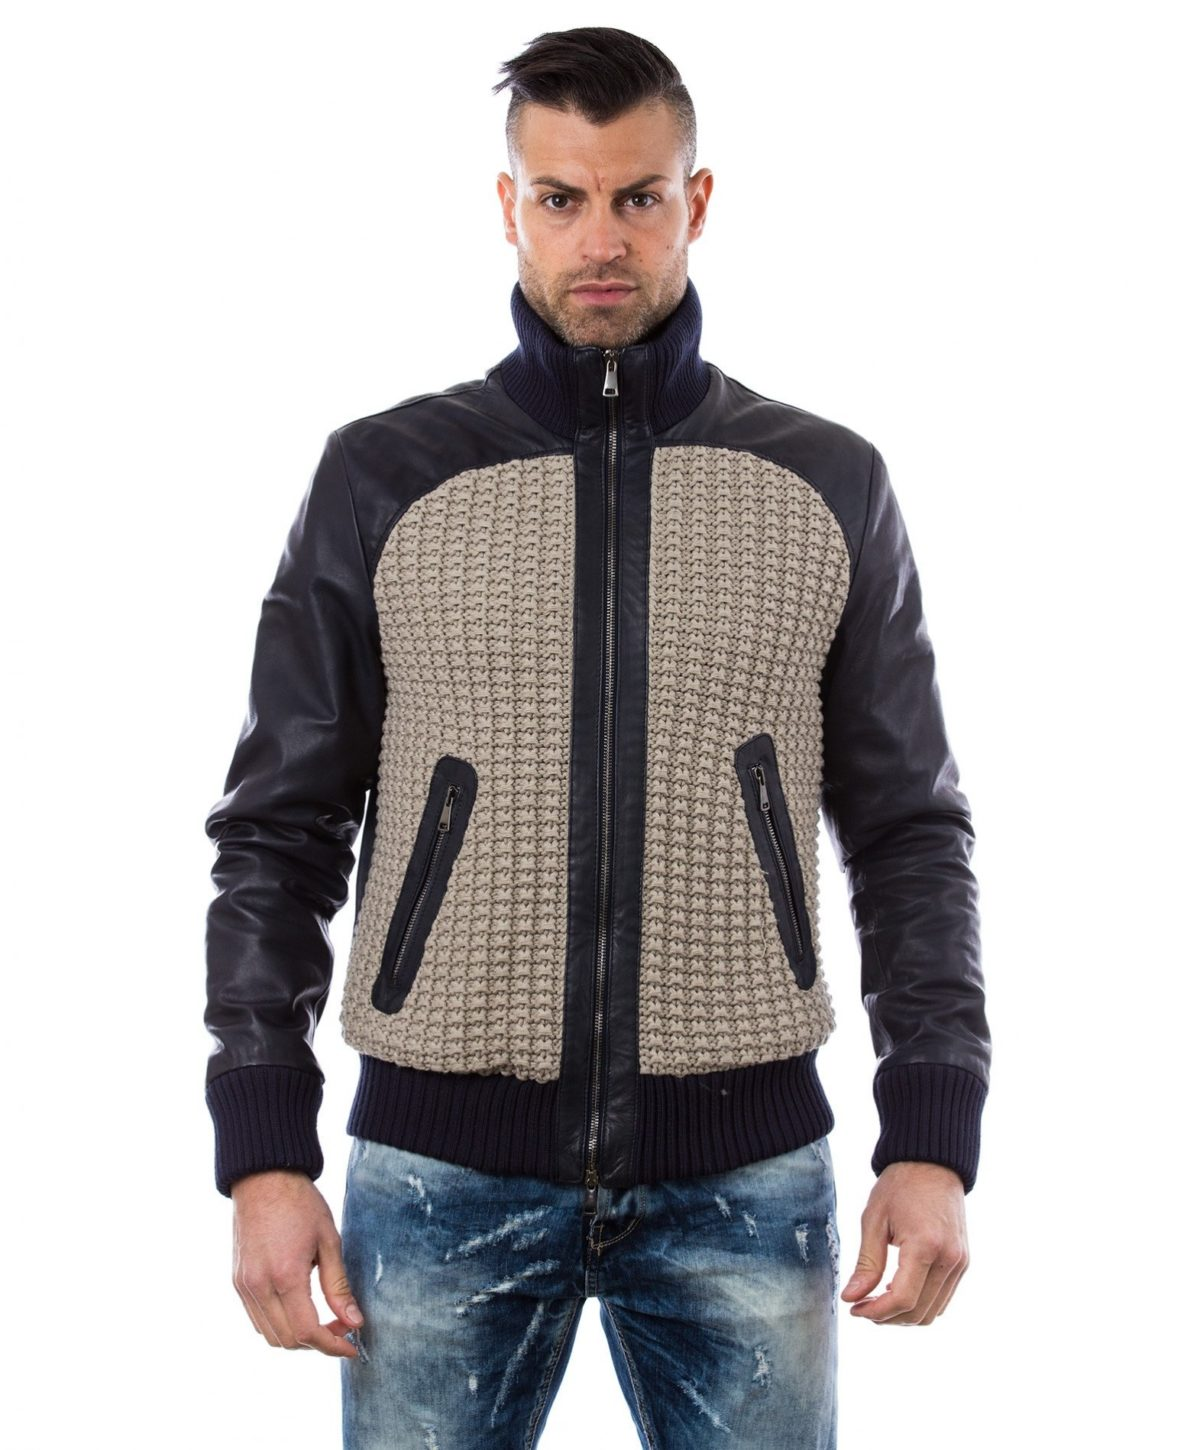 men-s-leather-jacket-style-bomber-wool-parts-and-zip-pockets-color-blue